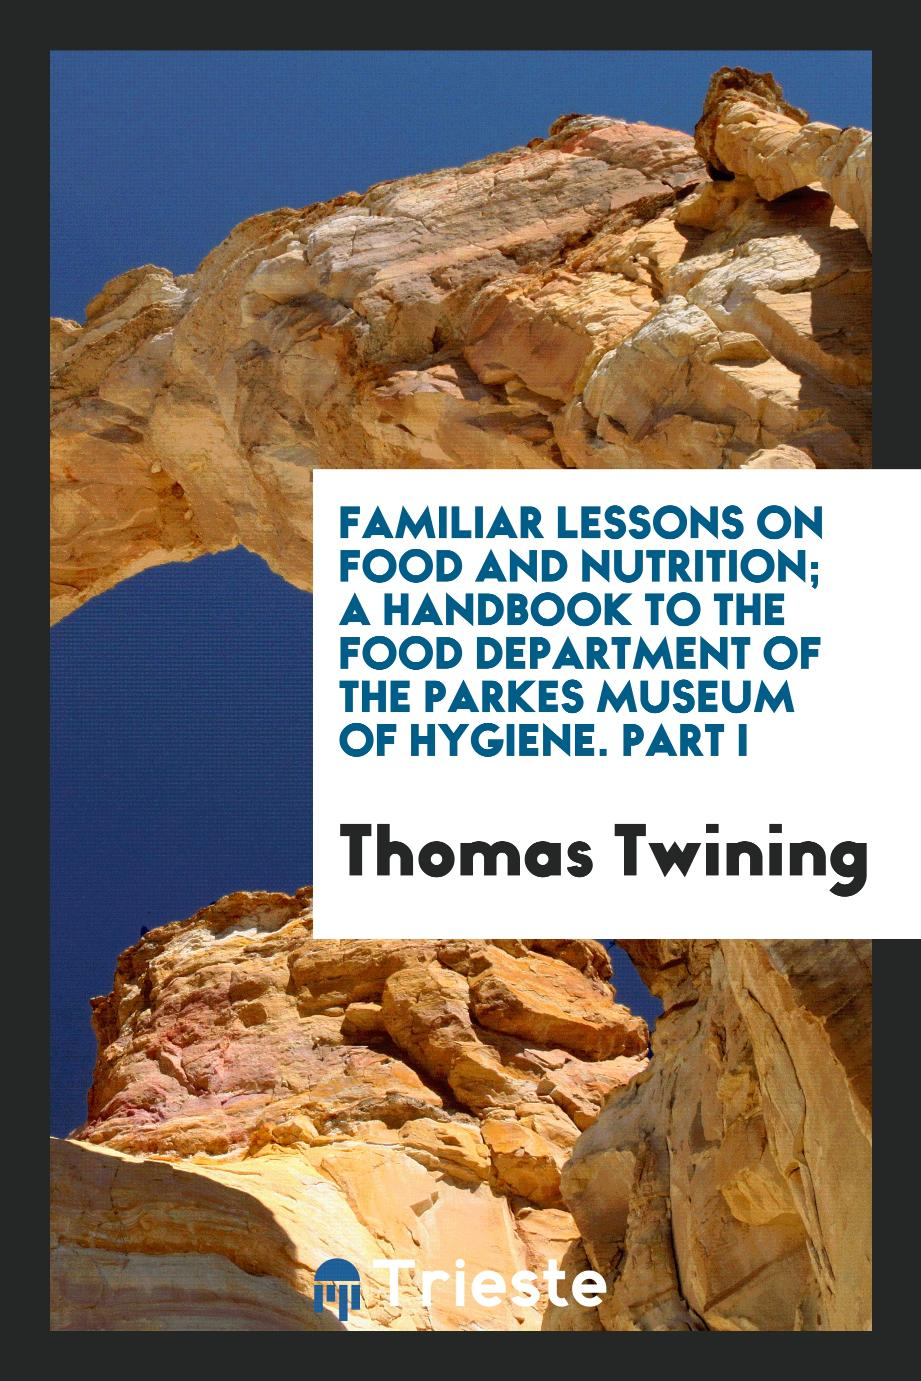 Familiar Lessons on Food and Nutrition; A Handbook to the Food Department of the Parkes Museum of Hygiene. Part I